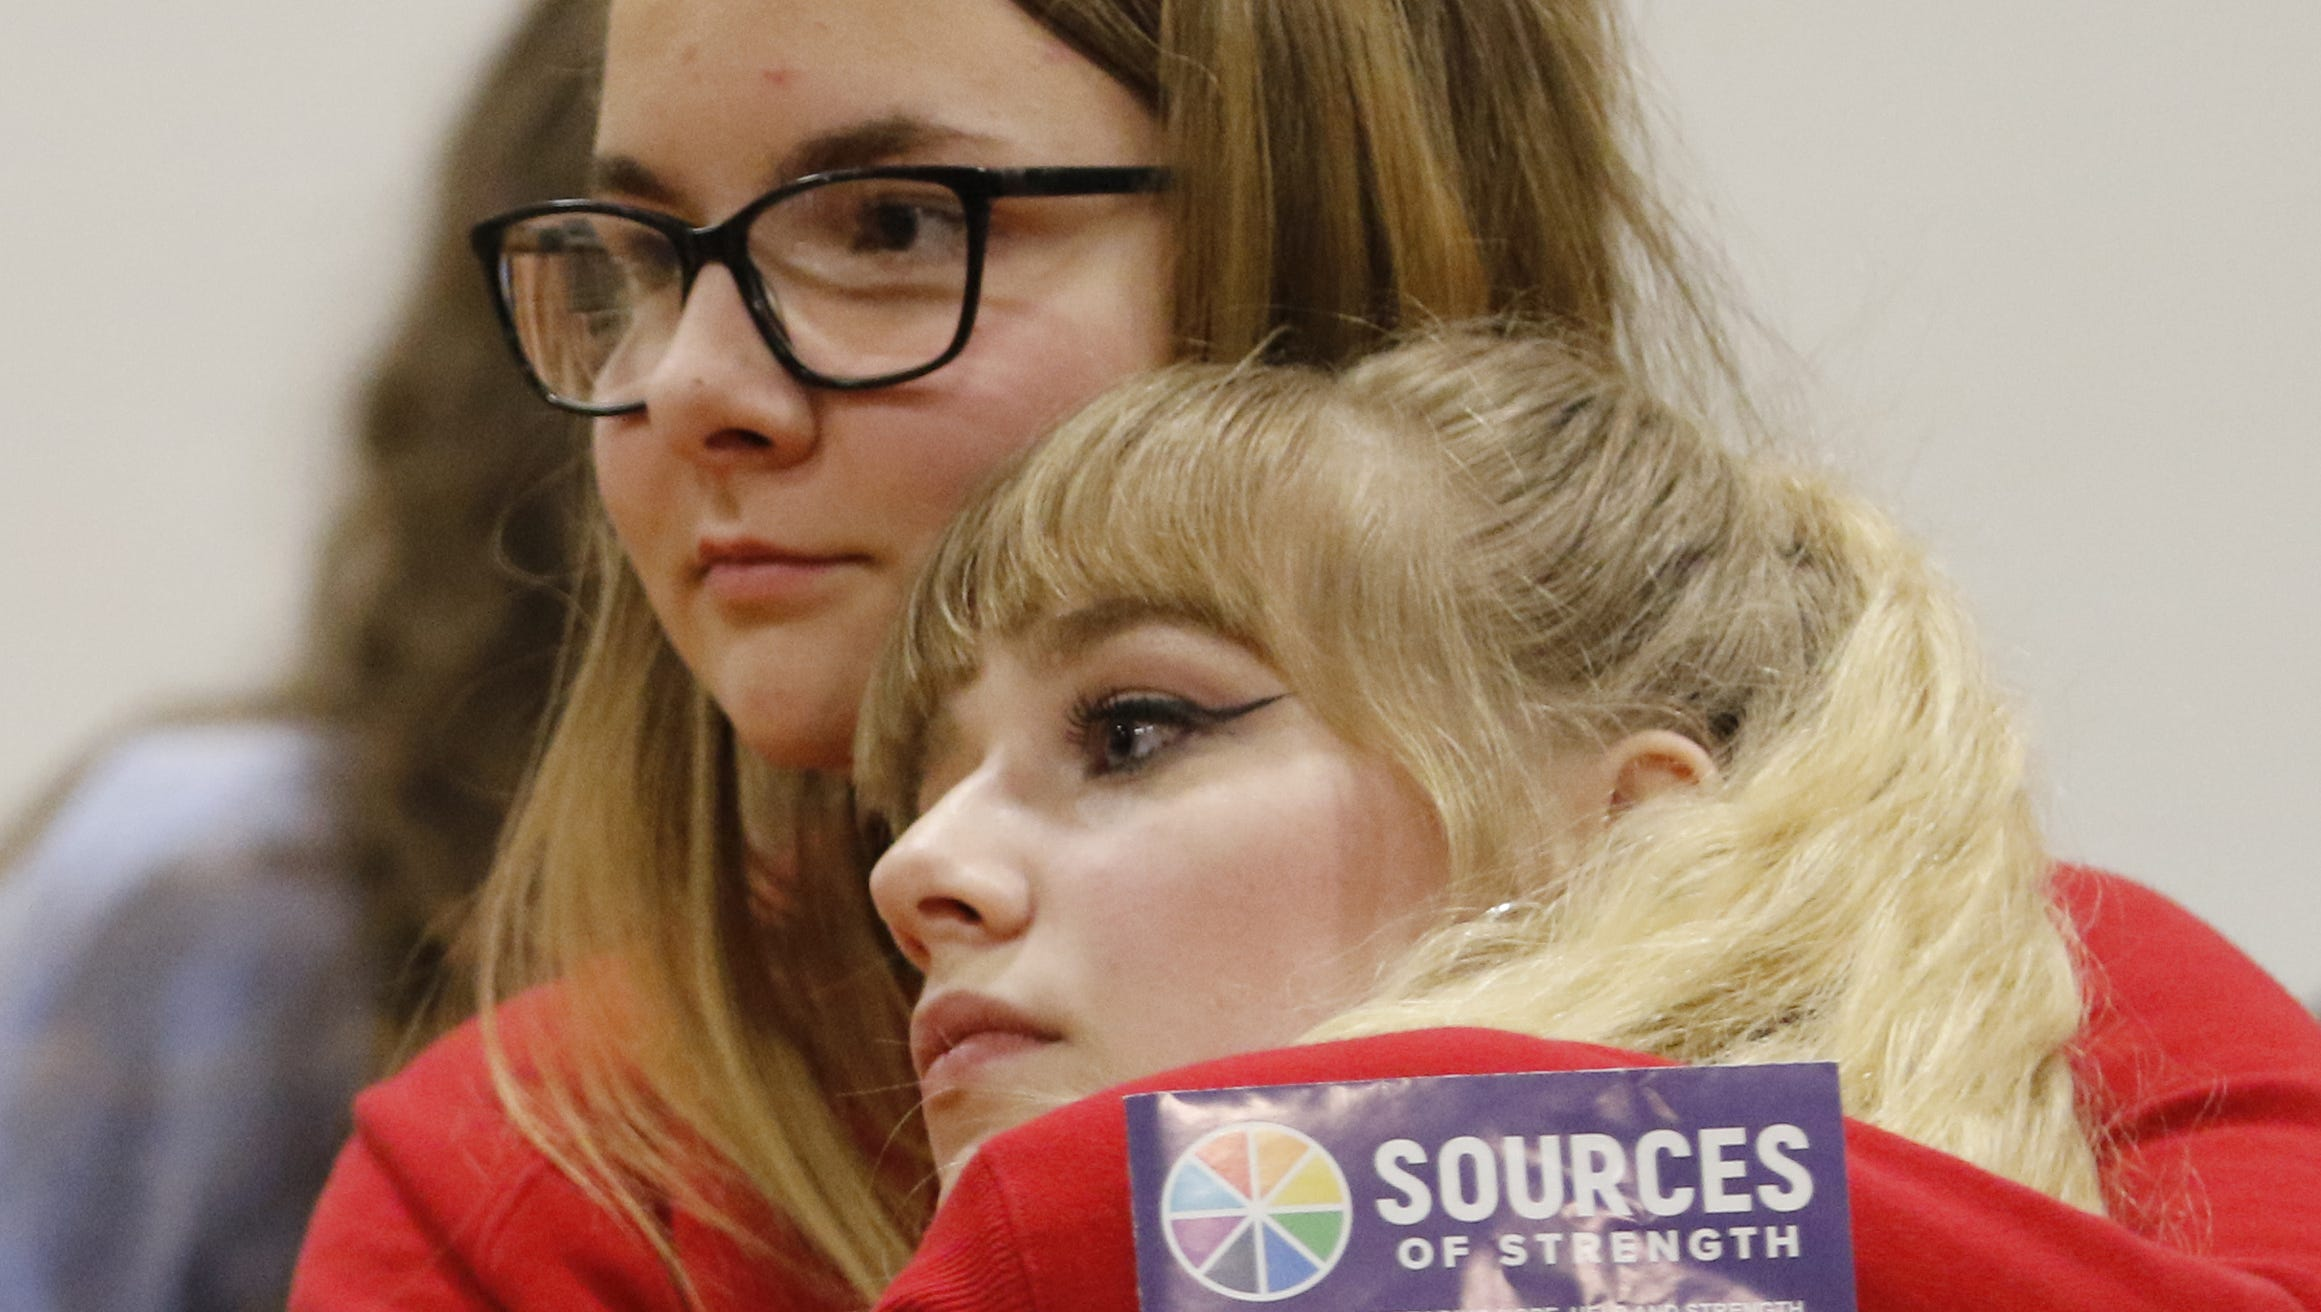 Time to listen: Wisconsin fumbles fixes for teen suicide. It's time to hear students' pleas.